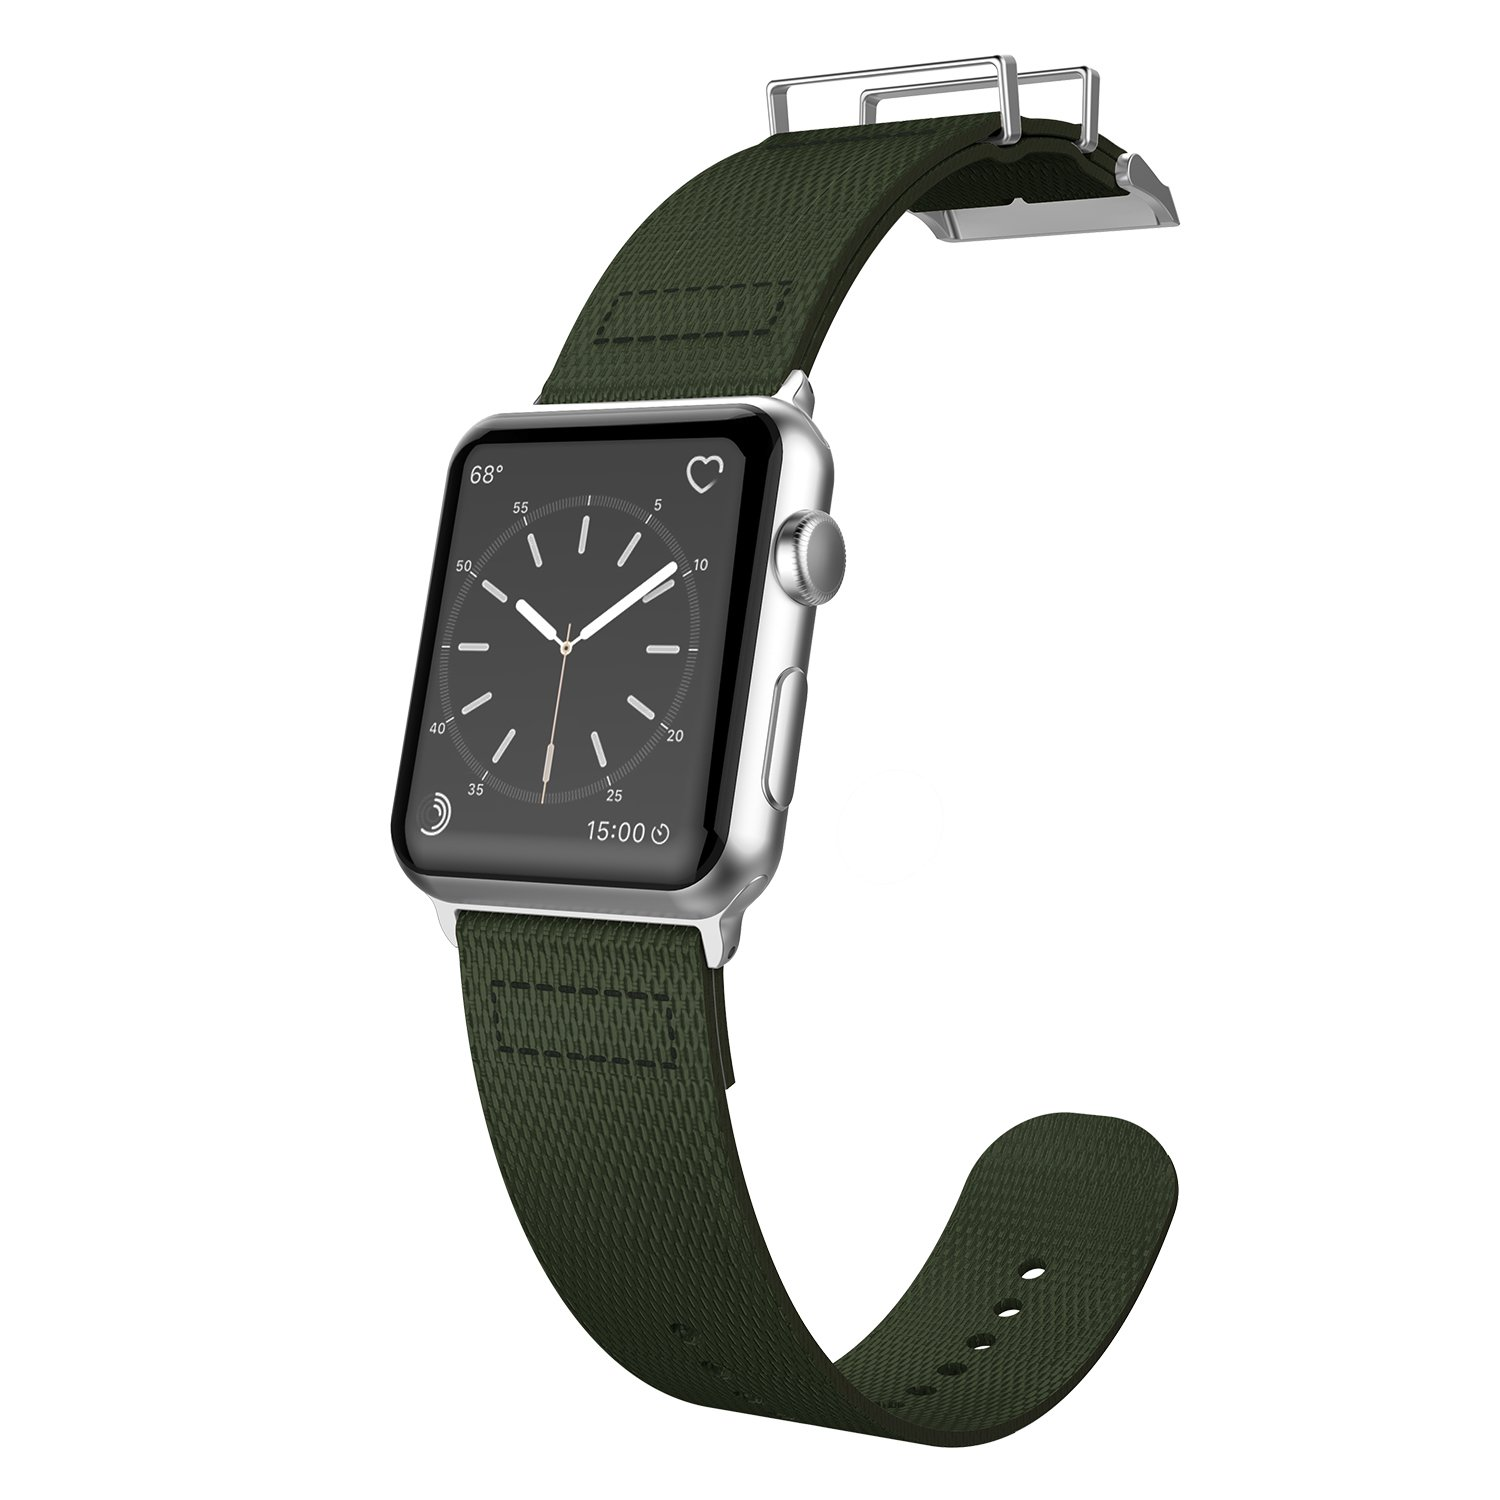 42mm Apple Watch Replacement Band, X-Doria Field Series - Compatible with Apple Watch Series 1, Series 2, Series 3 and Nike+, [Olive]